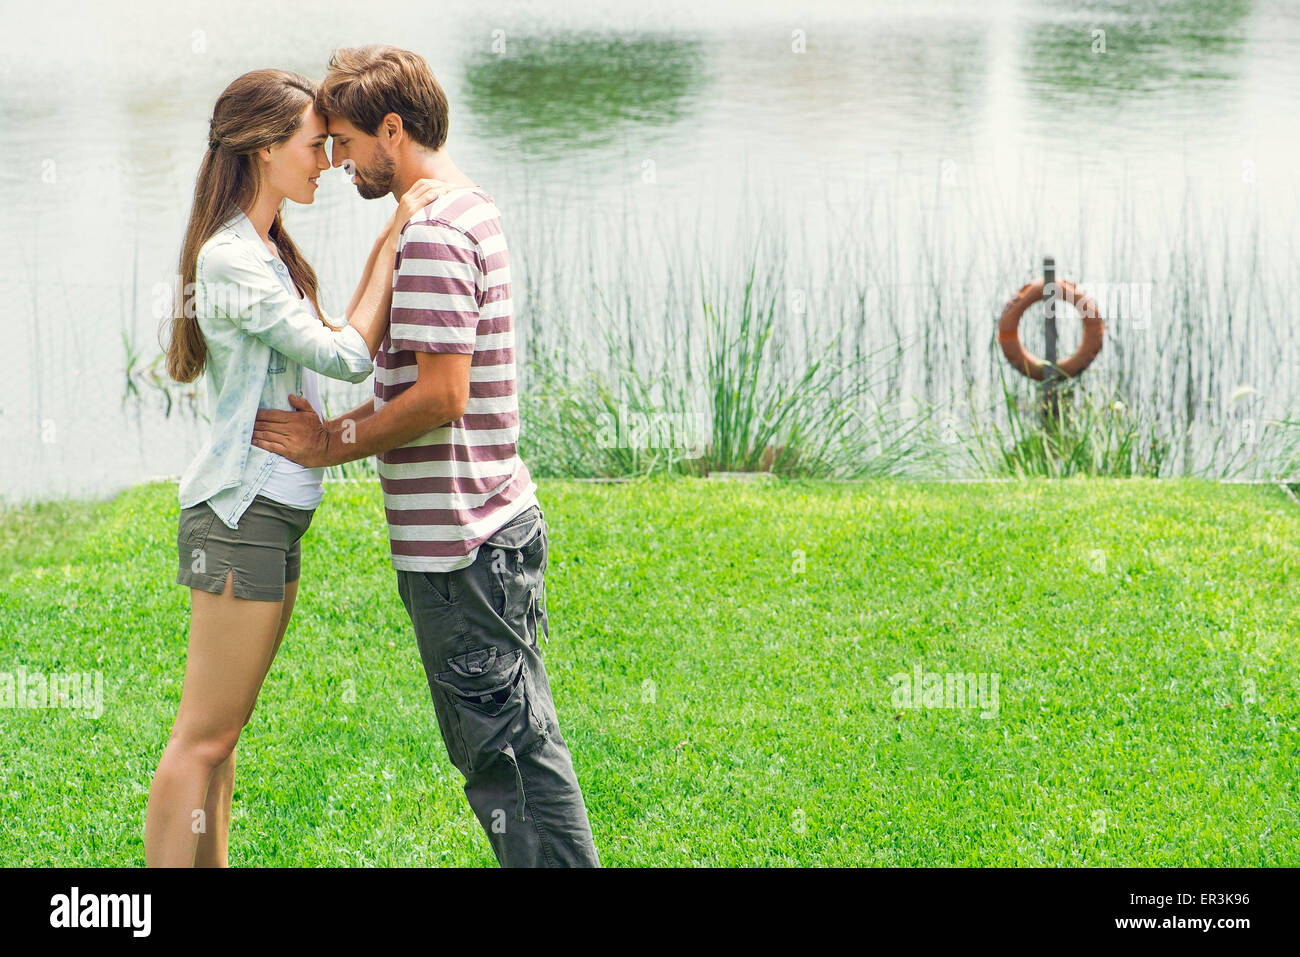 Young couple embracing outdoors - Stock Image